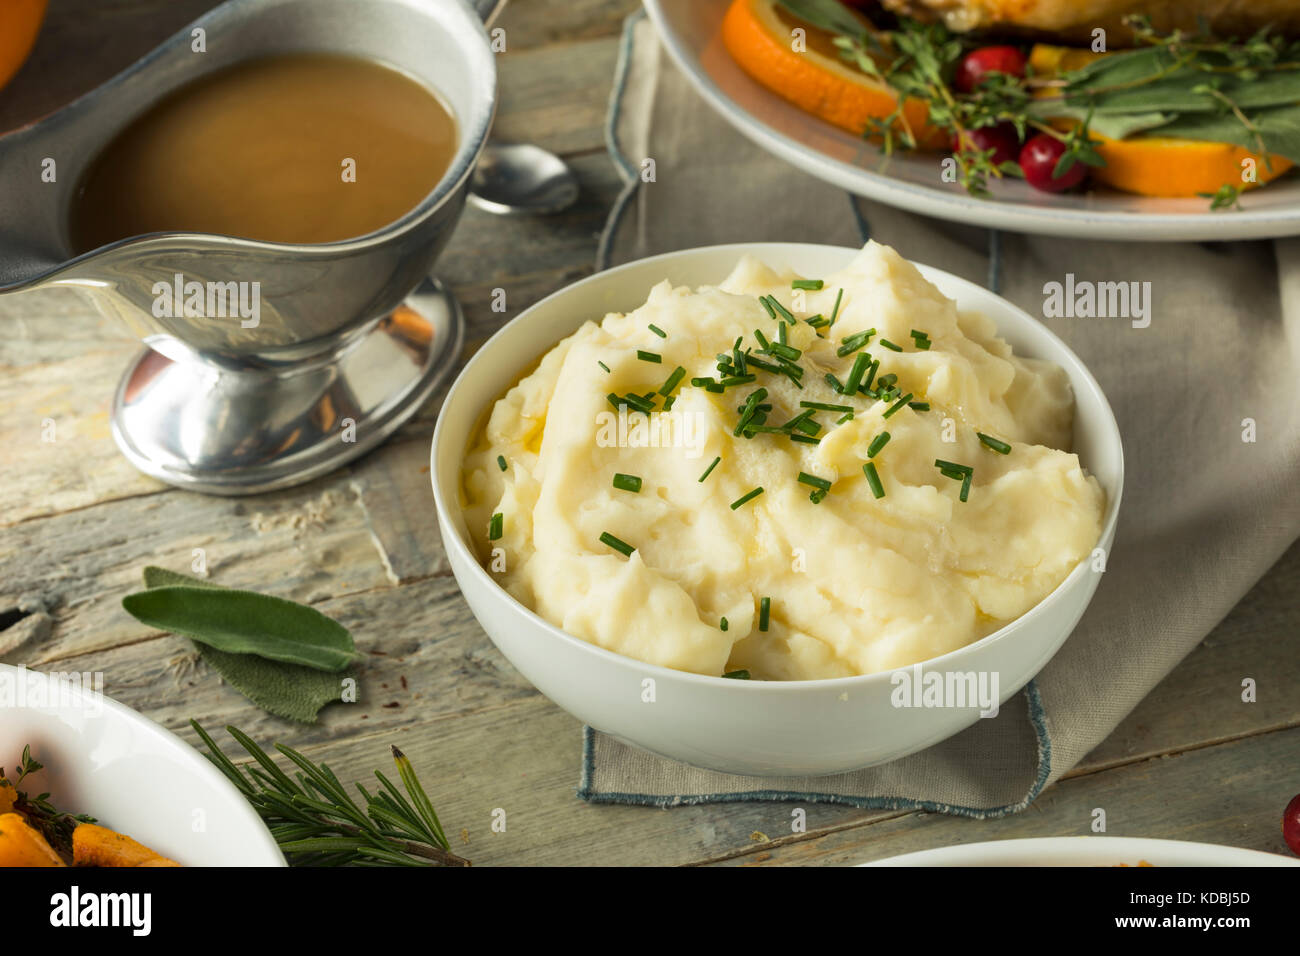 Homemade Creamy Whipped Mashed Potatoes with Chives - Stock Image